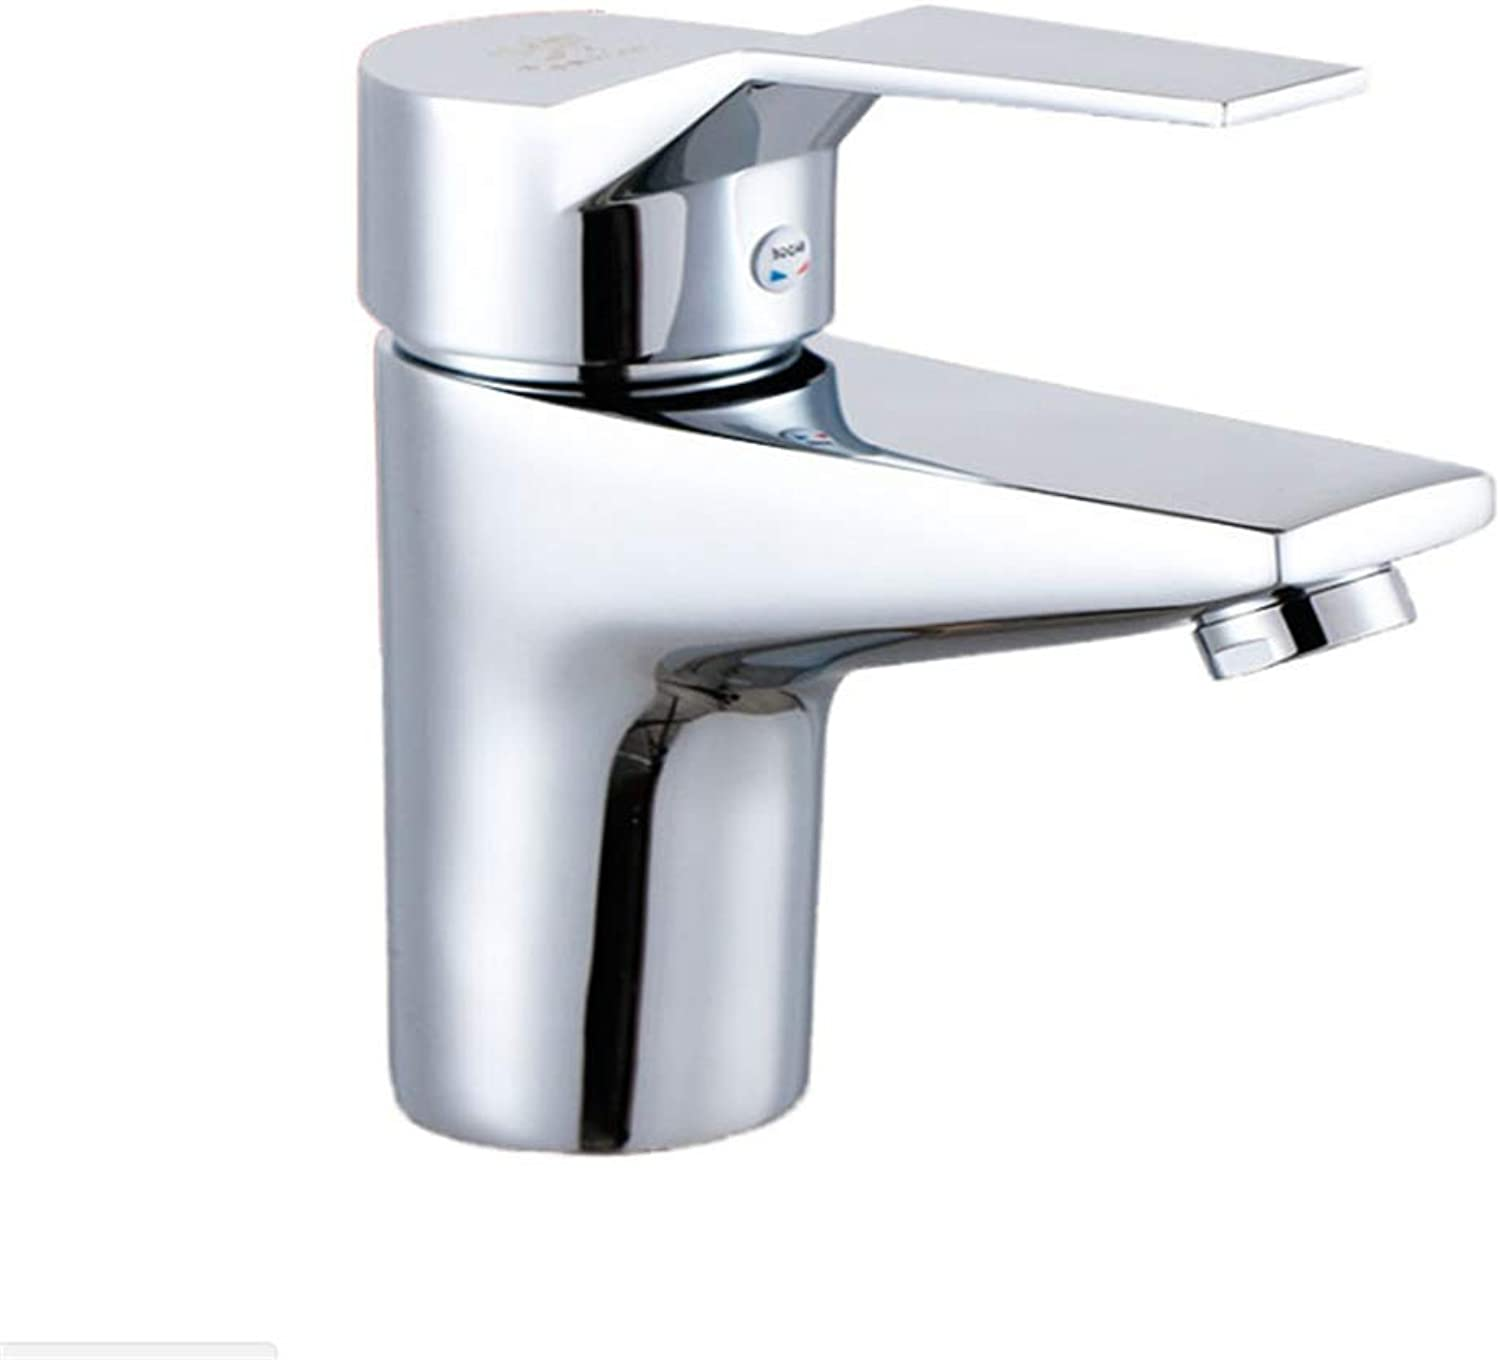 Kitchen Taps Faucet Modern Kitchen Sink Taps Stainless Steelfaucet Washbasin Single Hole Cold and Hot Faucet Faucet Bathroom Cabinet Faucet